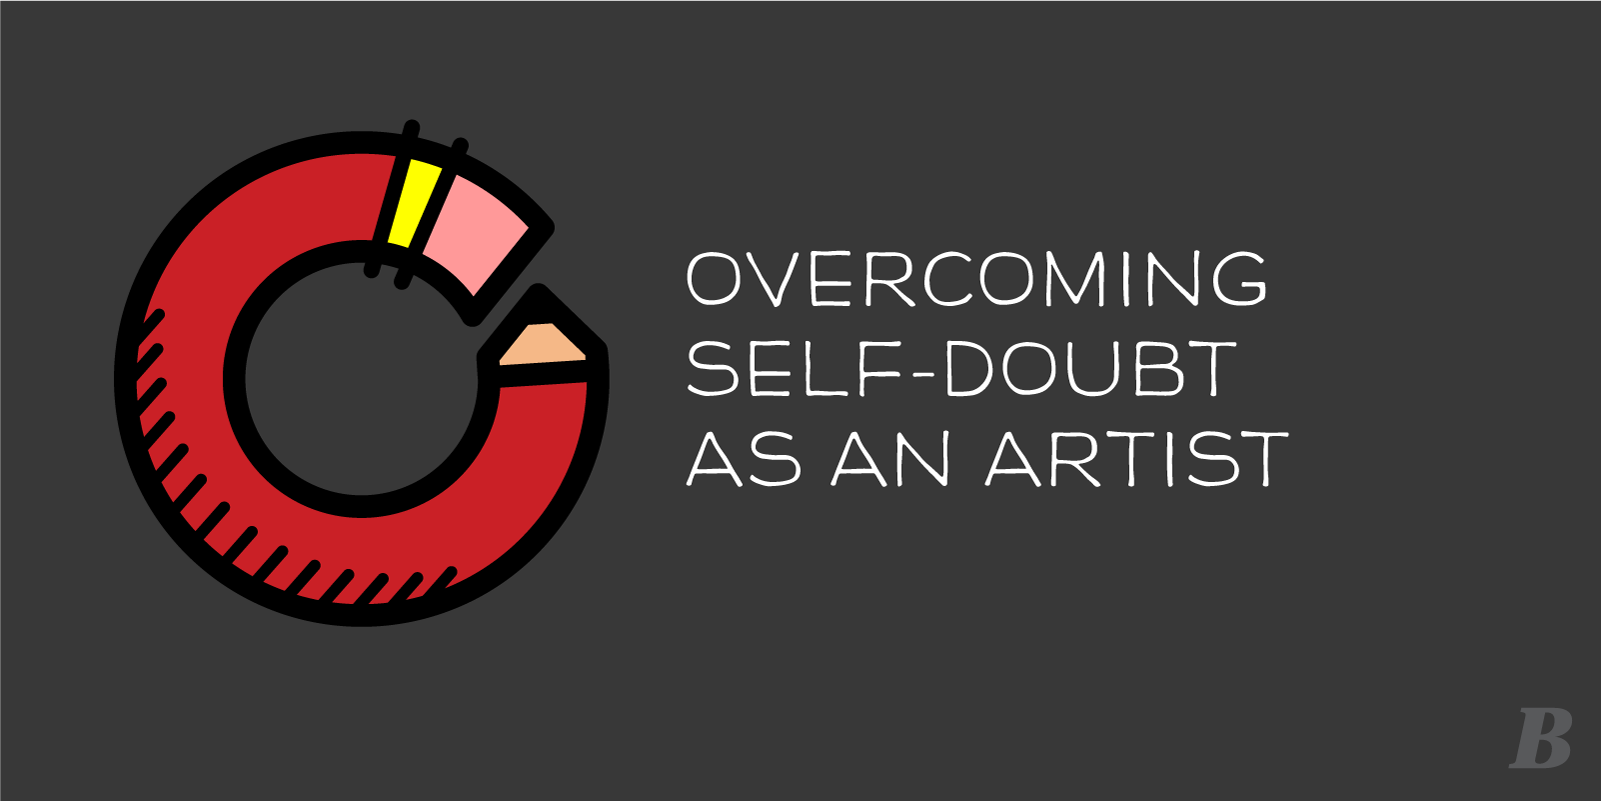 OVERCOMING-SELF-DOUBT-2018-04.png